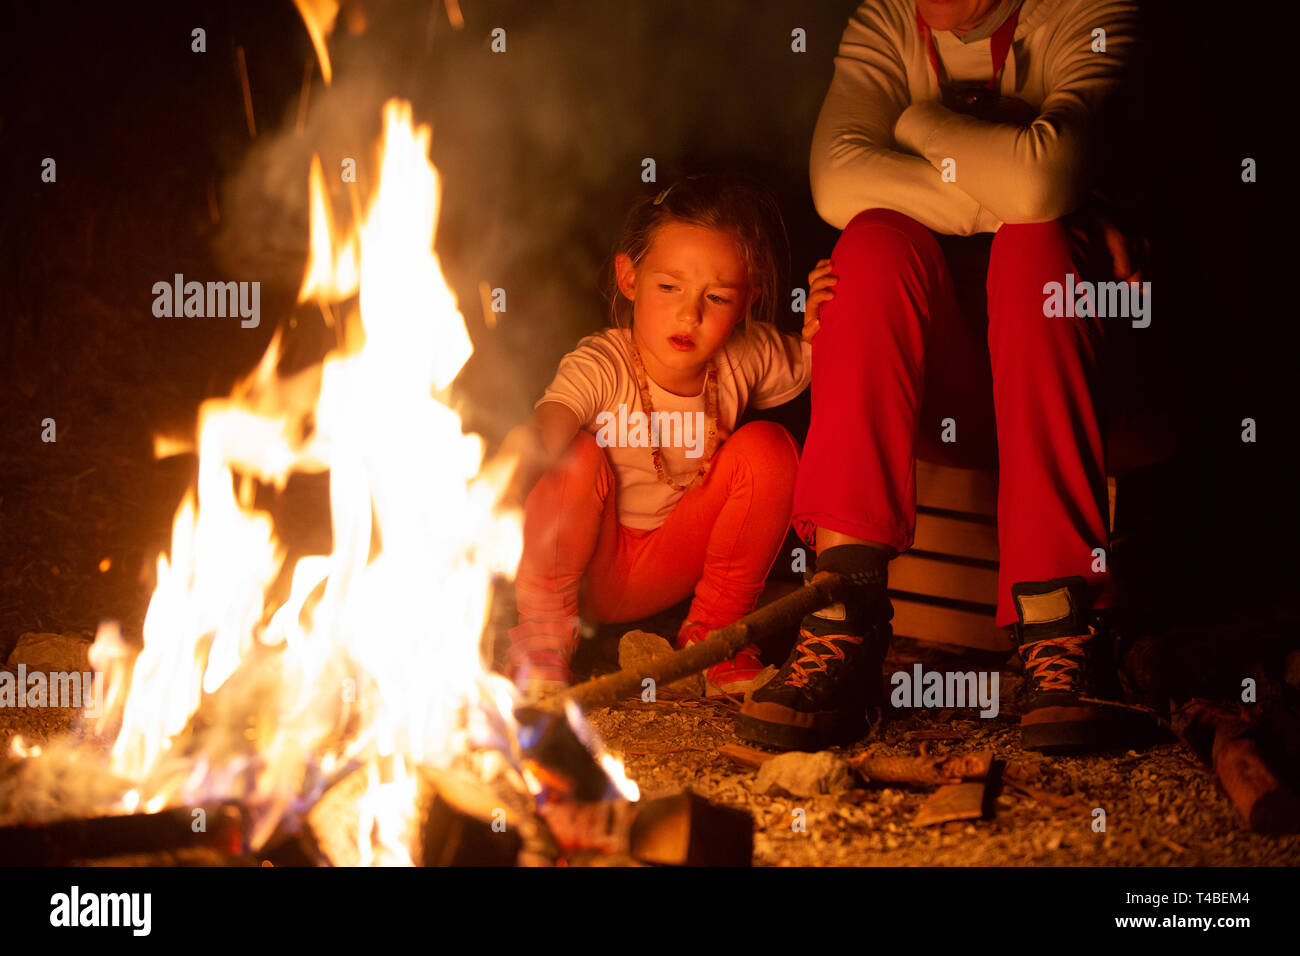 Mother and daughter spending quality time by a self-made campfire during adventurous camping trip, playing with fire. Active natural lifestyle, family - Stock Image